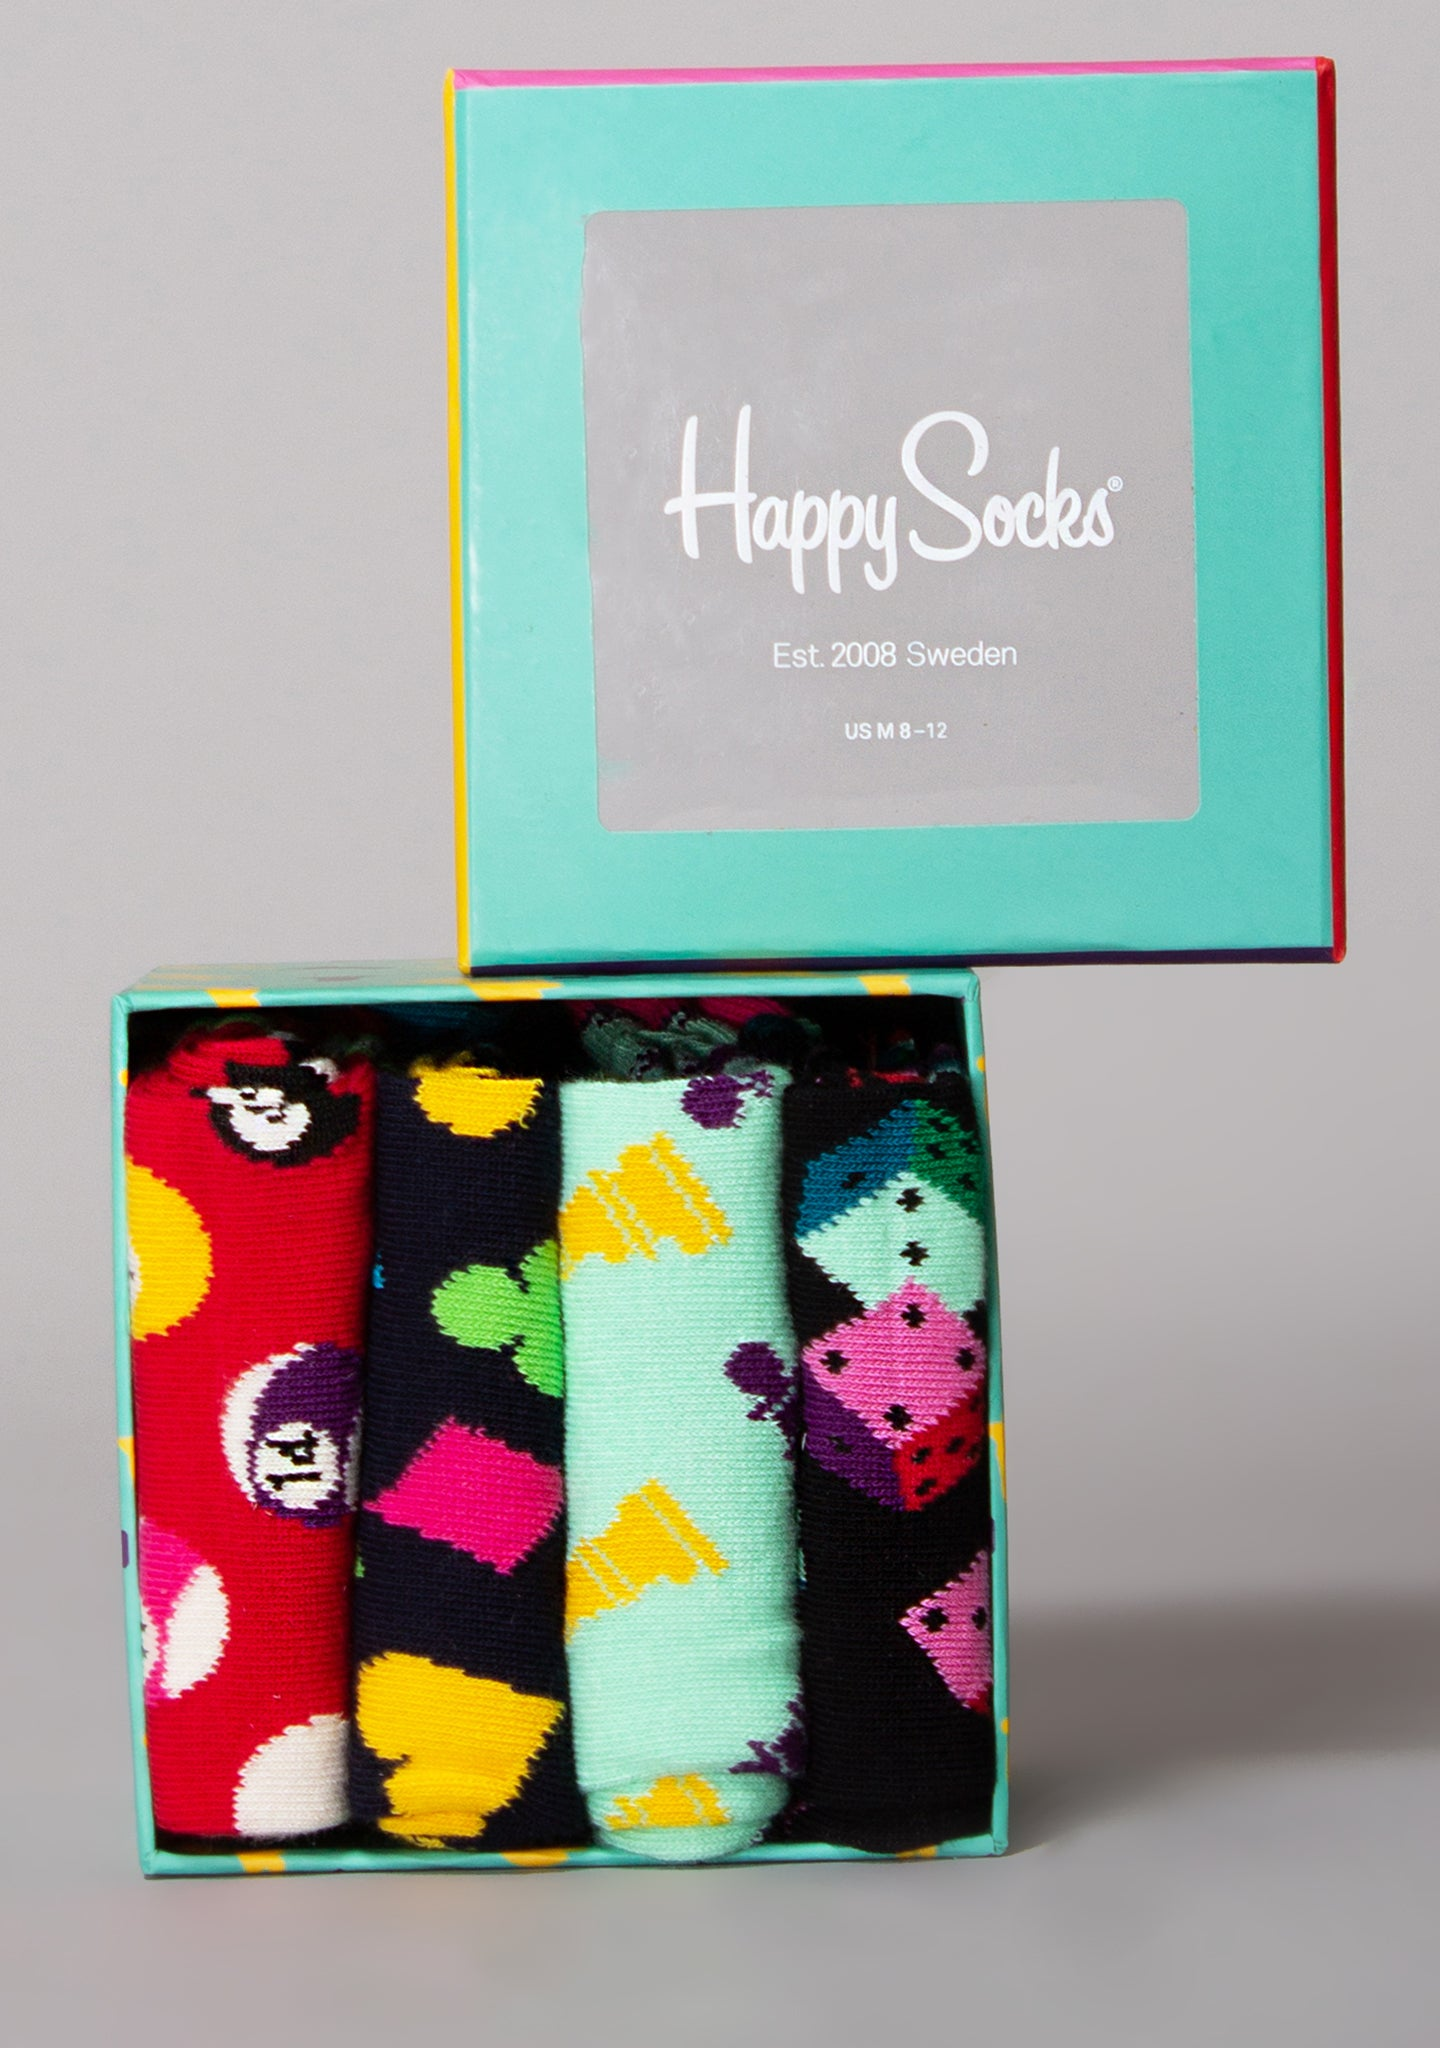 Game Night 4PK Socks Gift Set